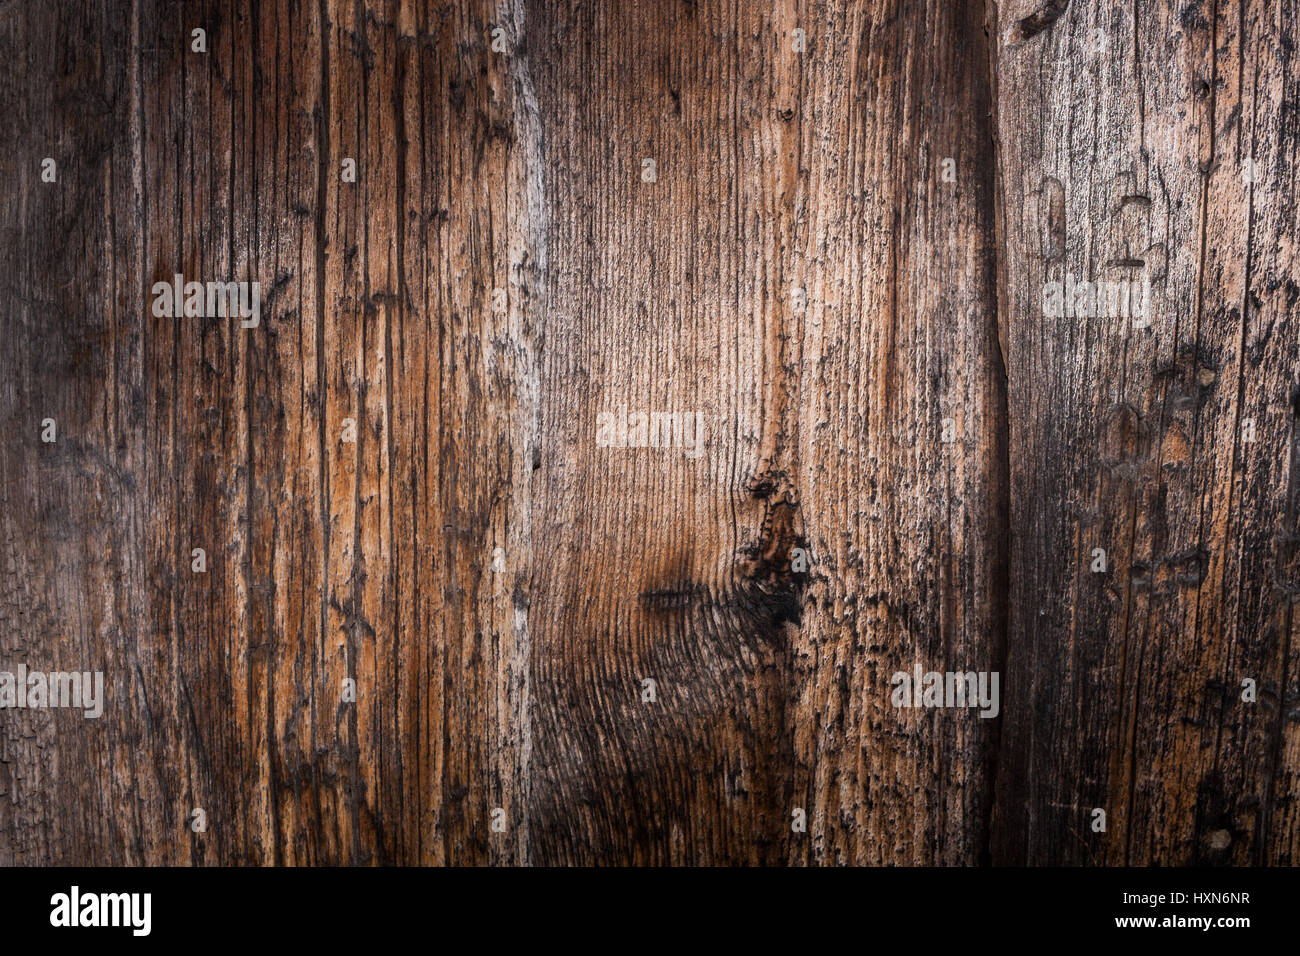 Wooden natural background  Wall of old wooden planks  Well